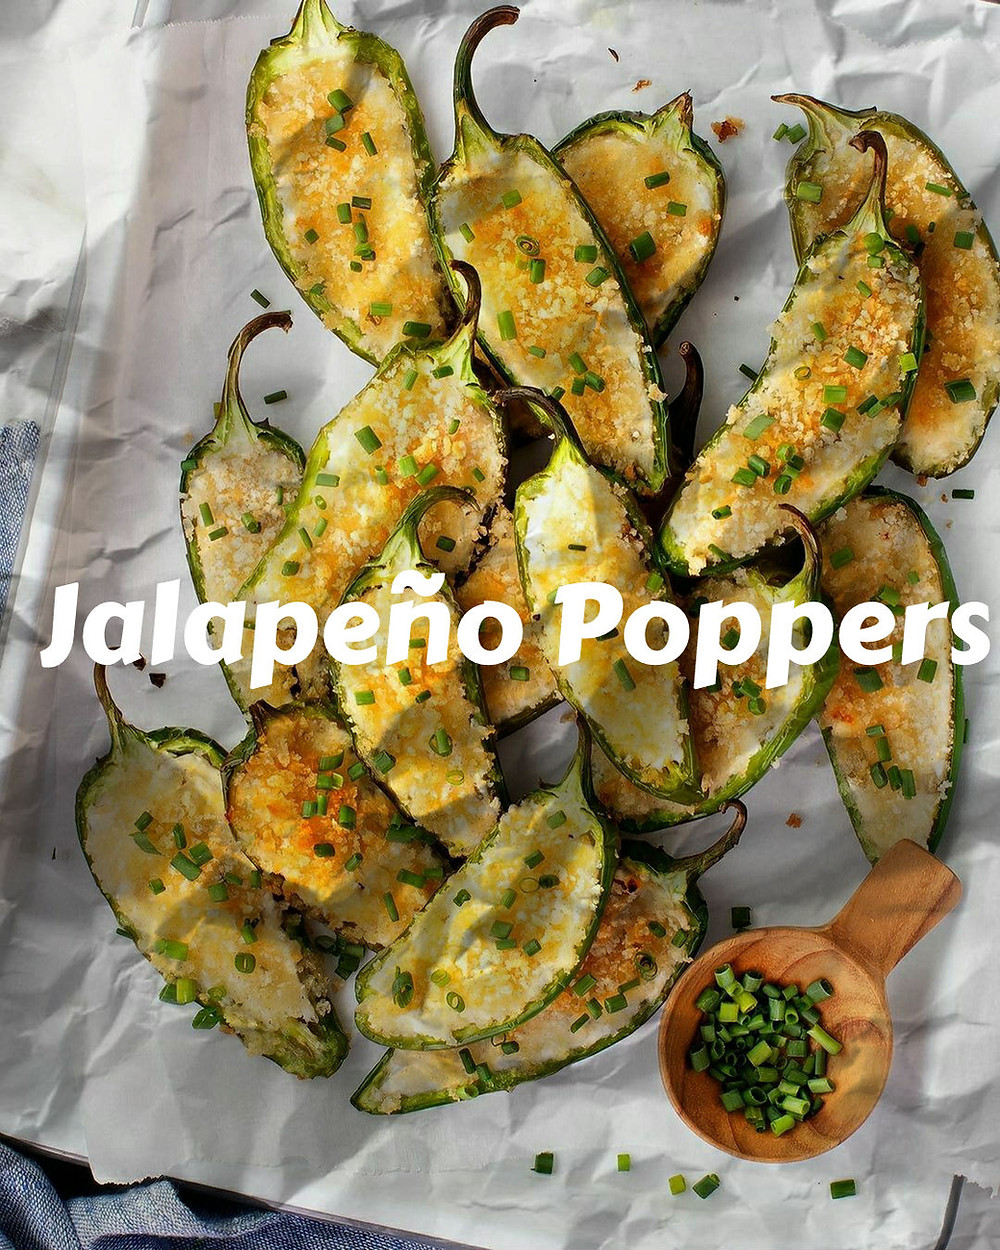 The best baked jalapeños in town